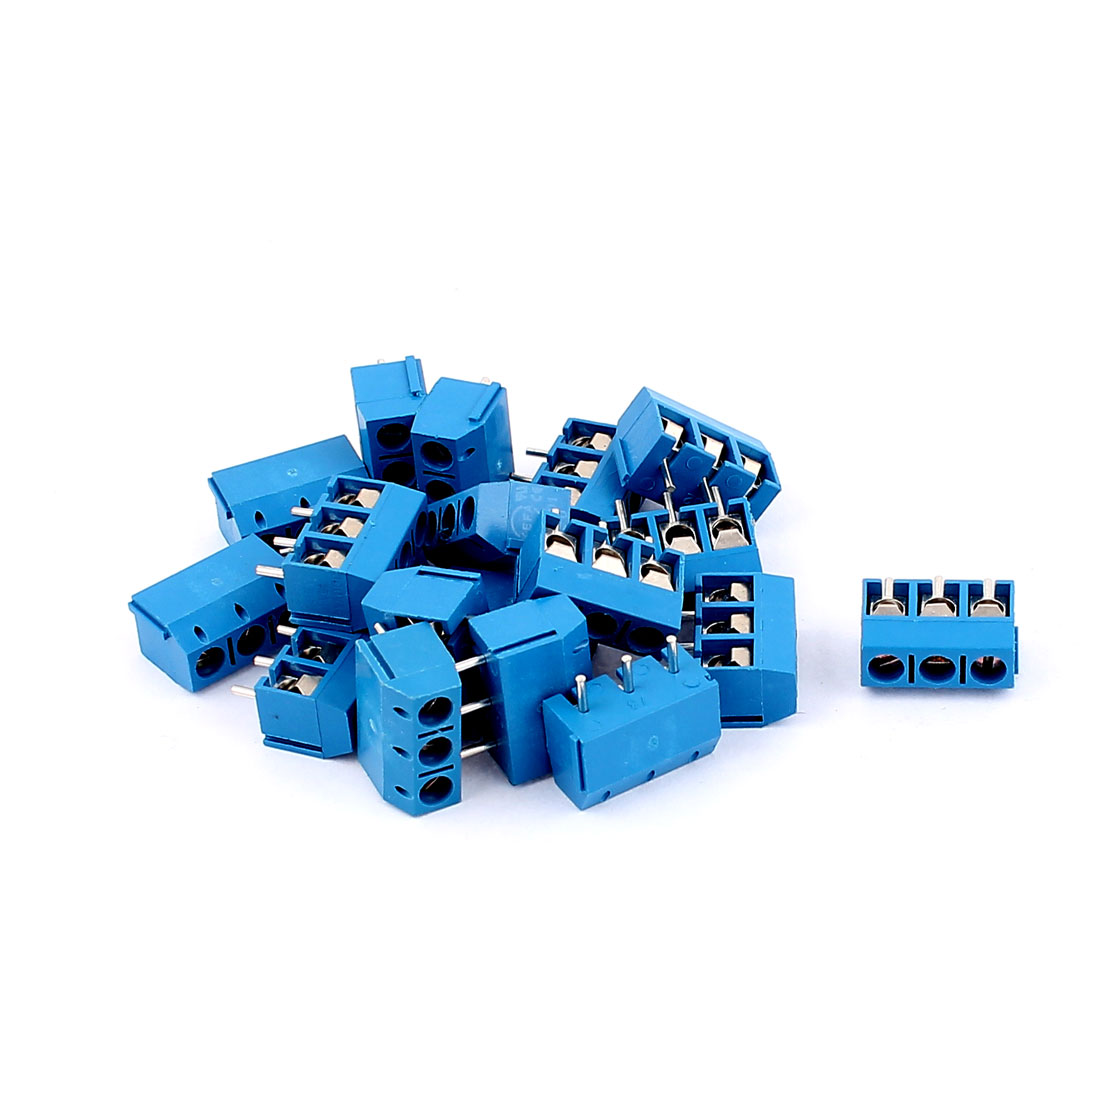 20Pcs 300V 16A 3 positions 1mm Pitch Pluggable Terminal Block Blue